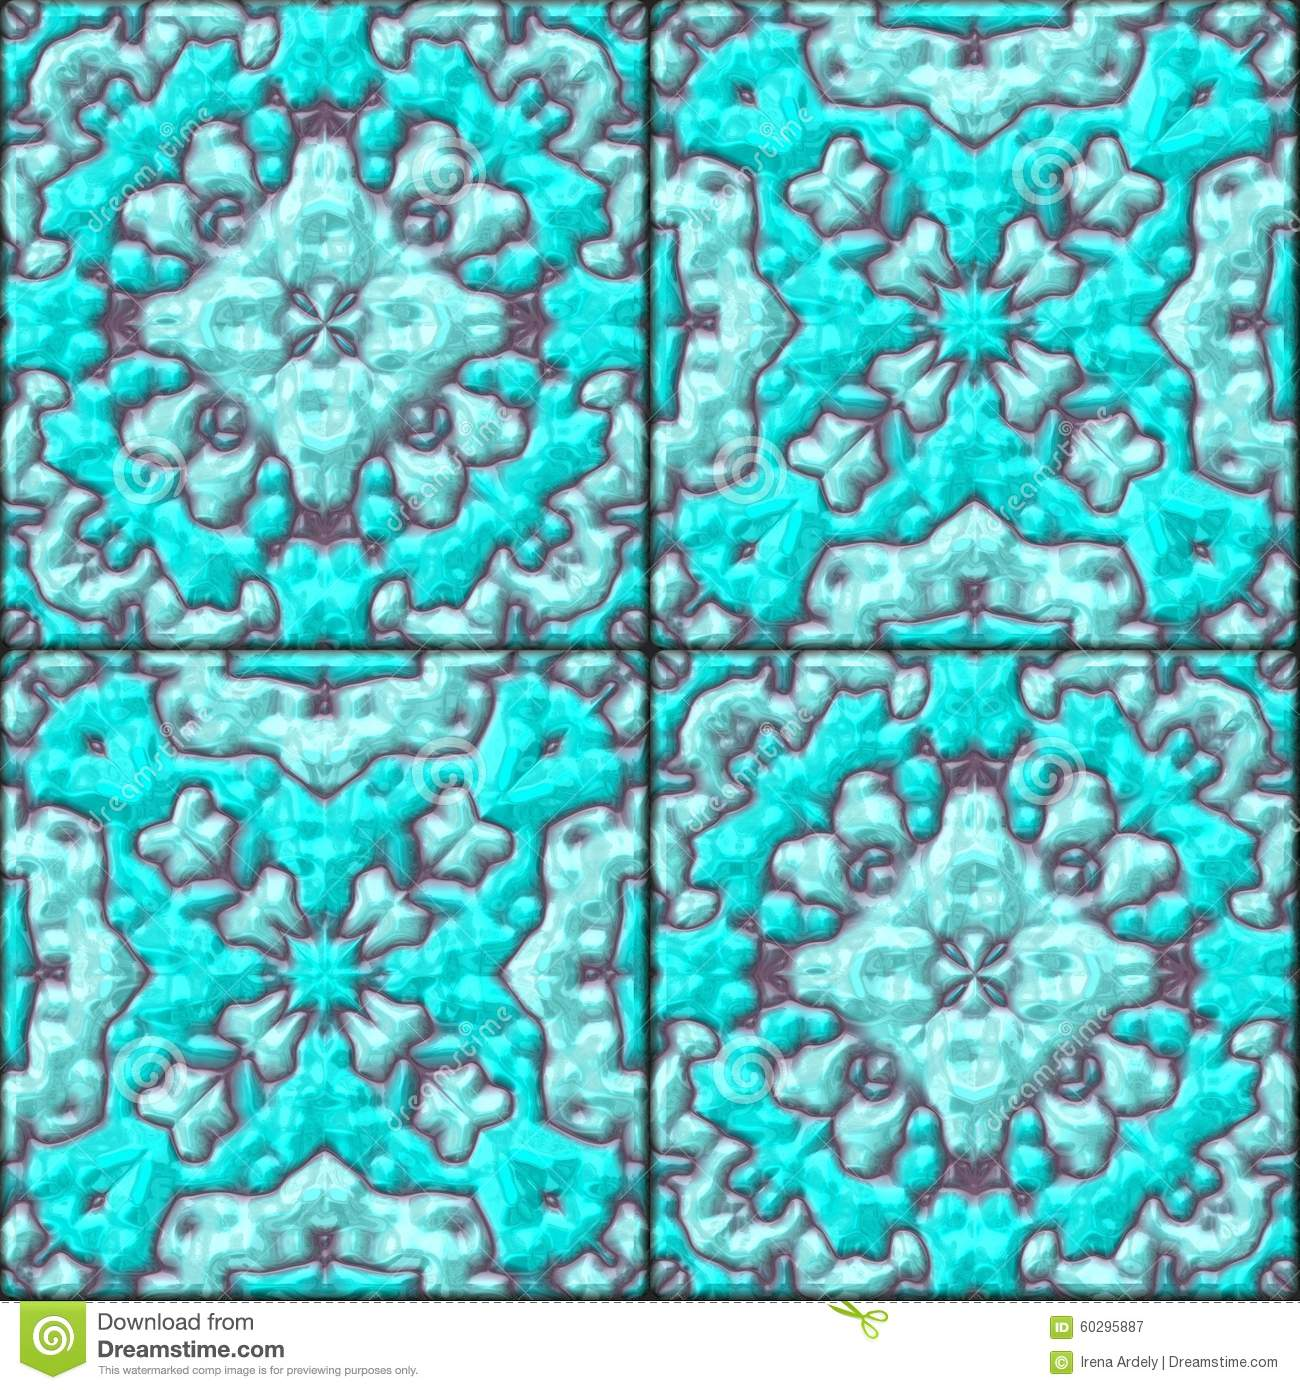 Turquoise blue floral ceramic tiles seamless pattern for Object pool design pattern